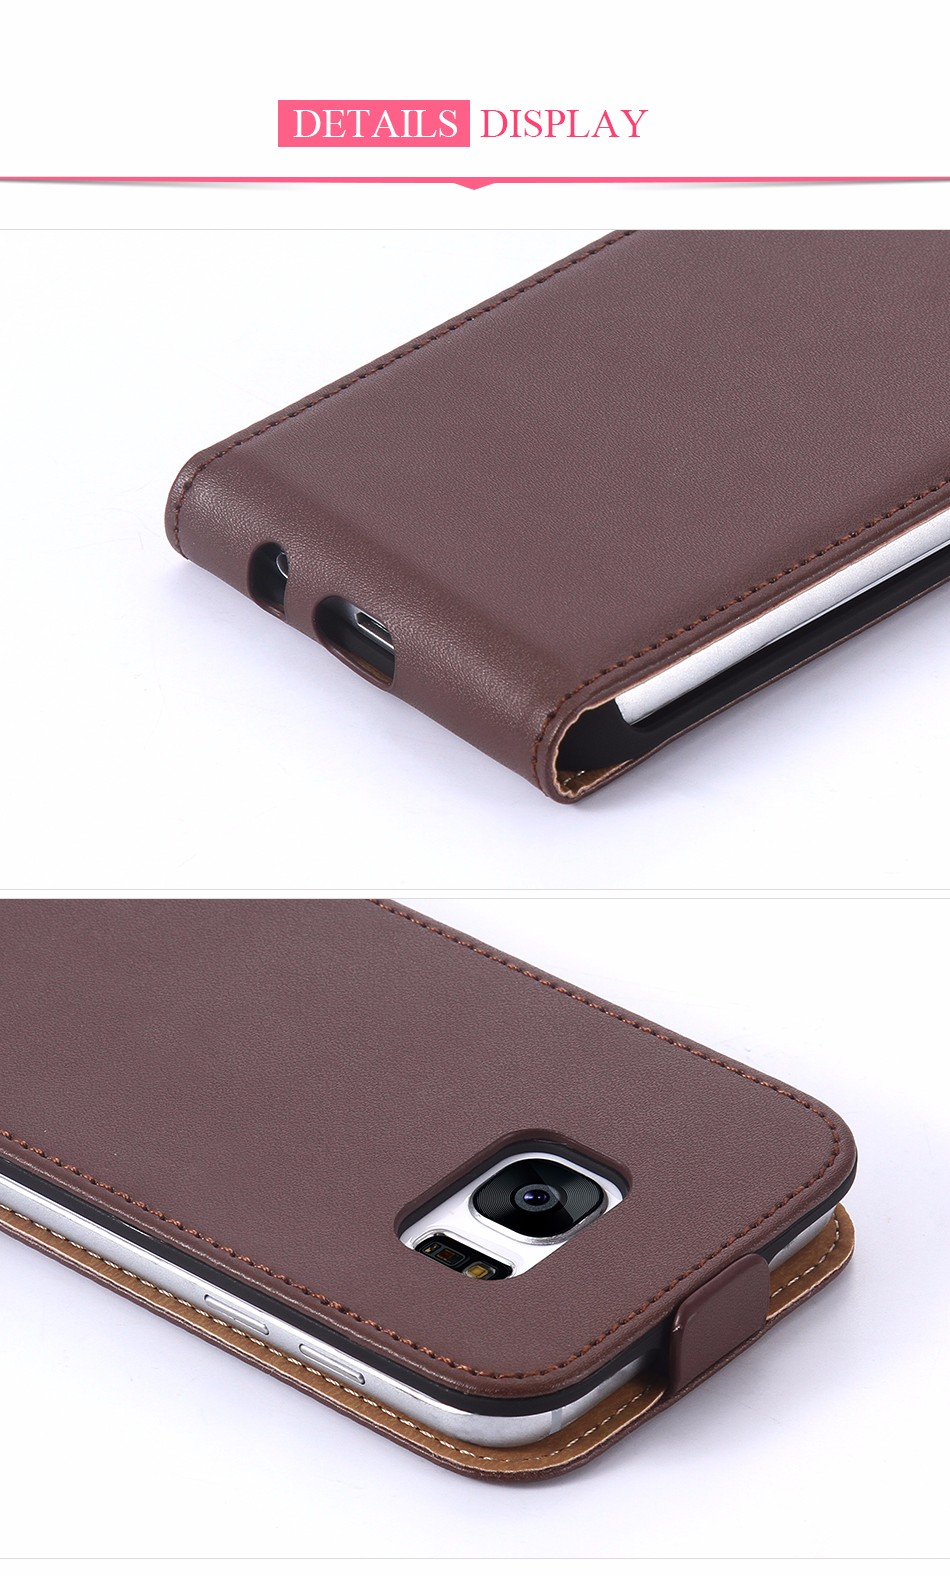 Hot Retro Genuine Leather Case for iPhone 5S I5 4S 4 Luxury Vertical Magnetic Flip Phone Accessories Real Full Cover For Iphone5 1 (6)